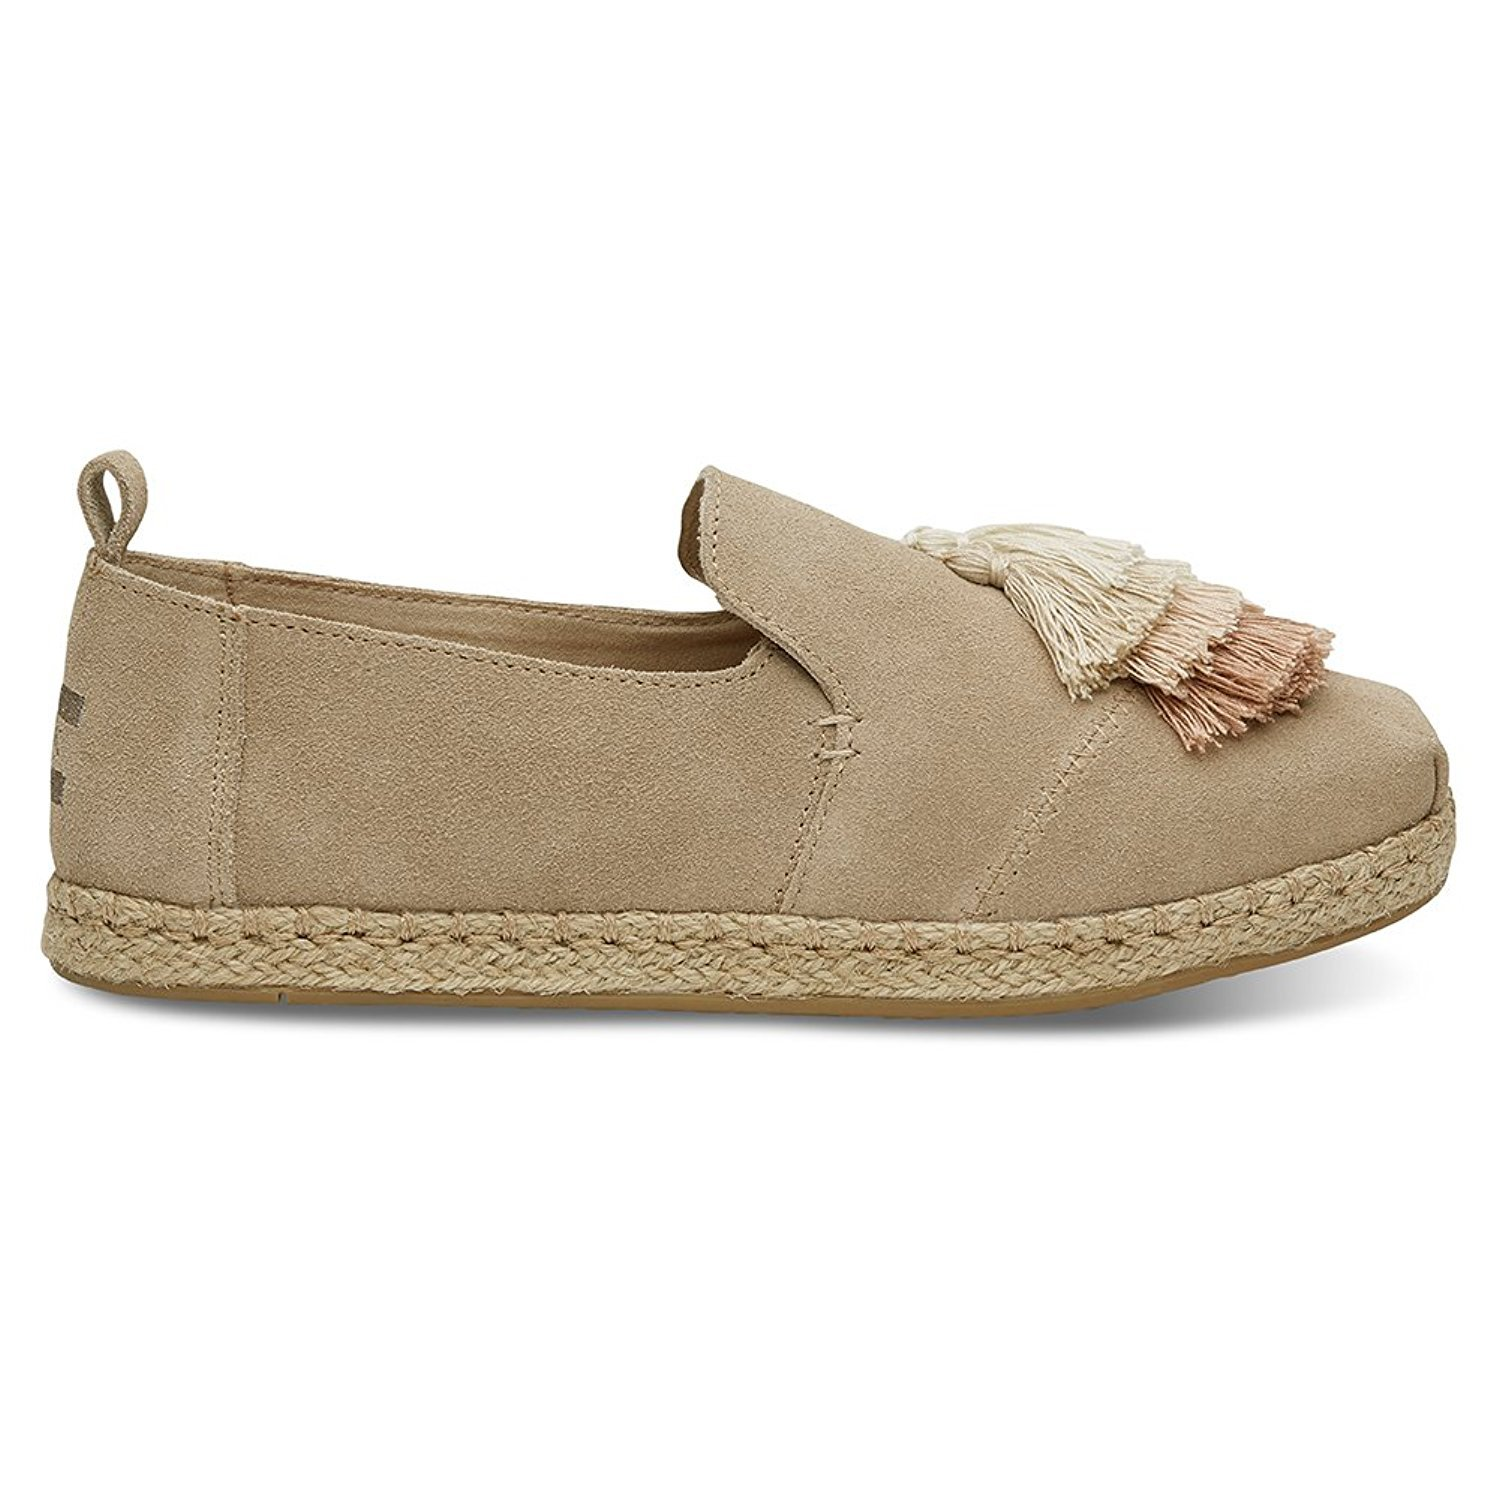 TOMS Women's Tassel Deconstructed Alpargata Shoe (11 B(M) US / 41-42 EUR, Oxford Tan Suede)